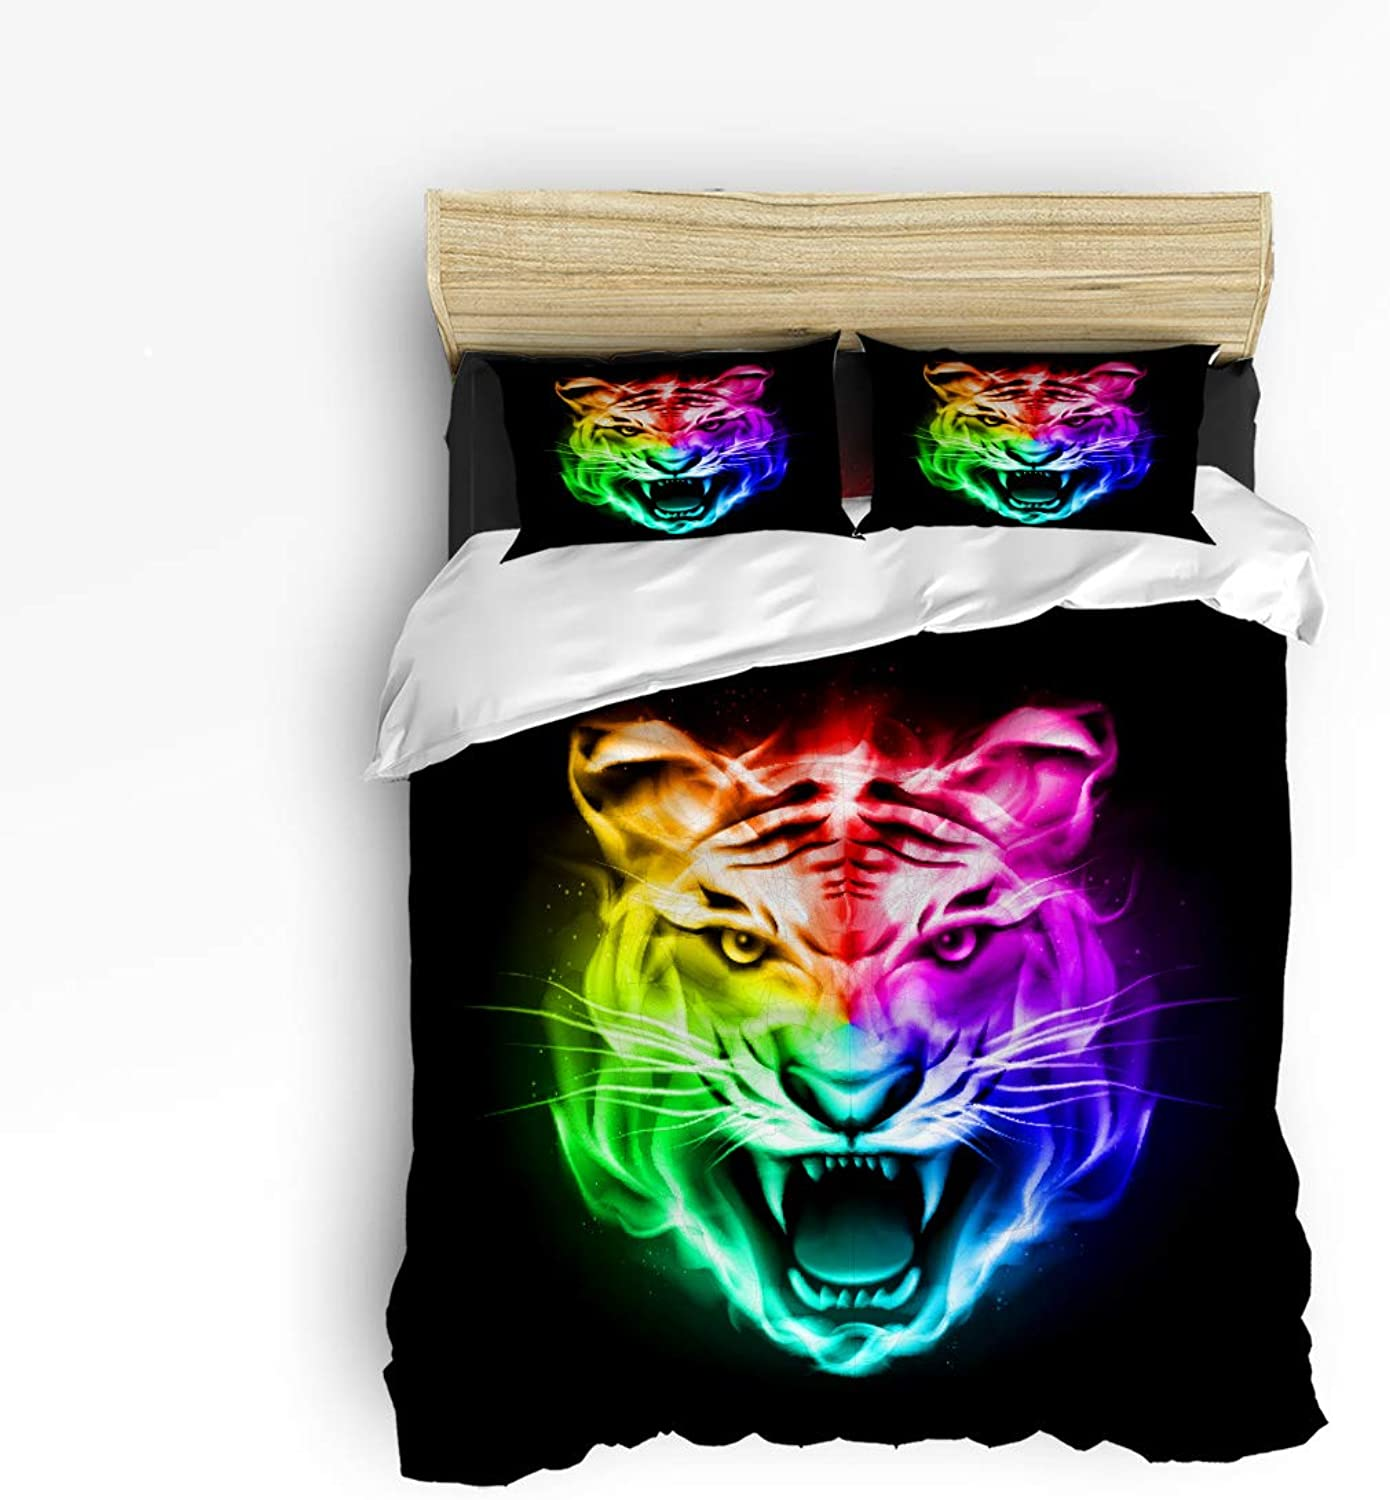 Fandim Fly Bedding Set Twin Size, colorful Animal Roaring Tiger,Comforter Cover Sets for All Season